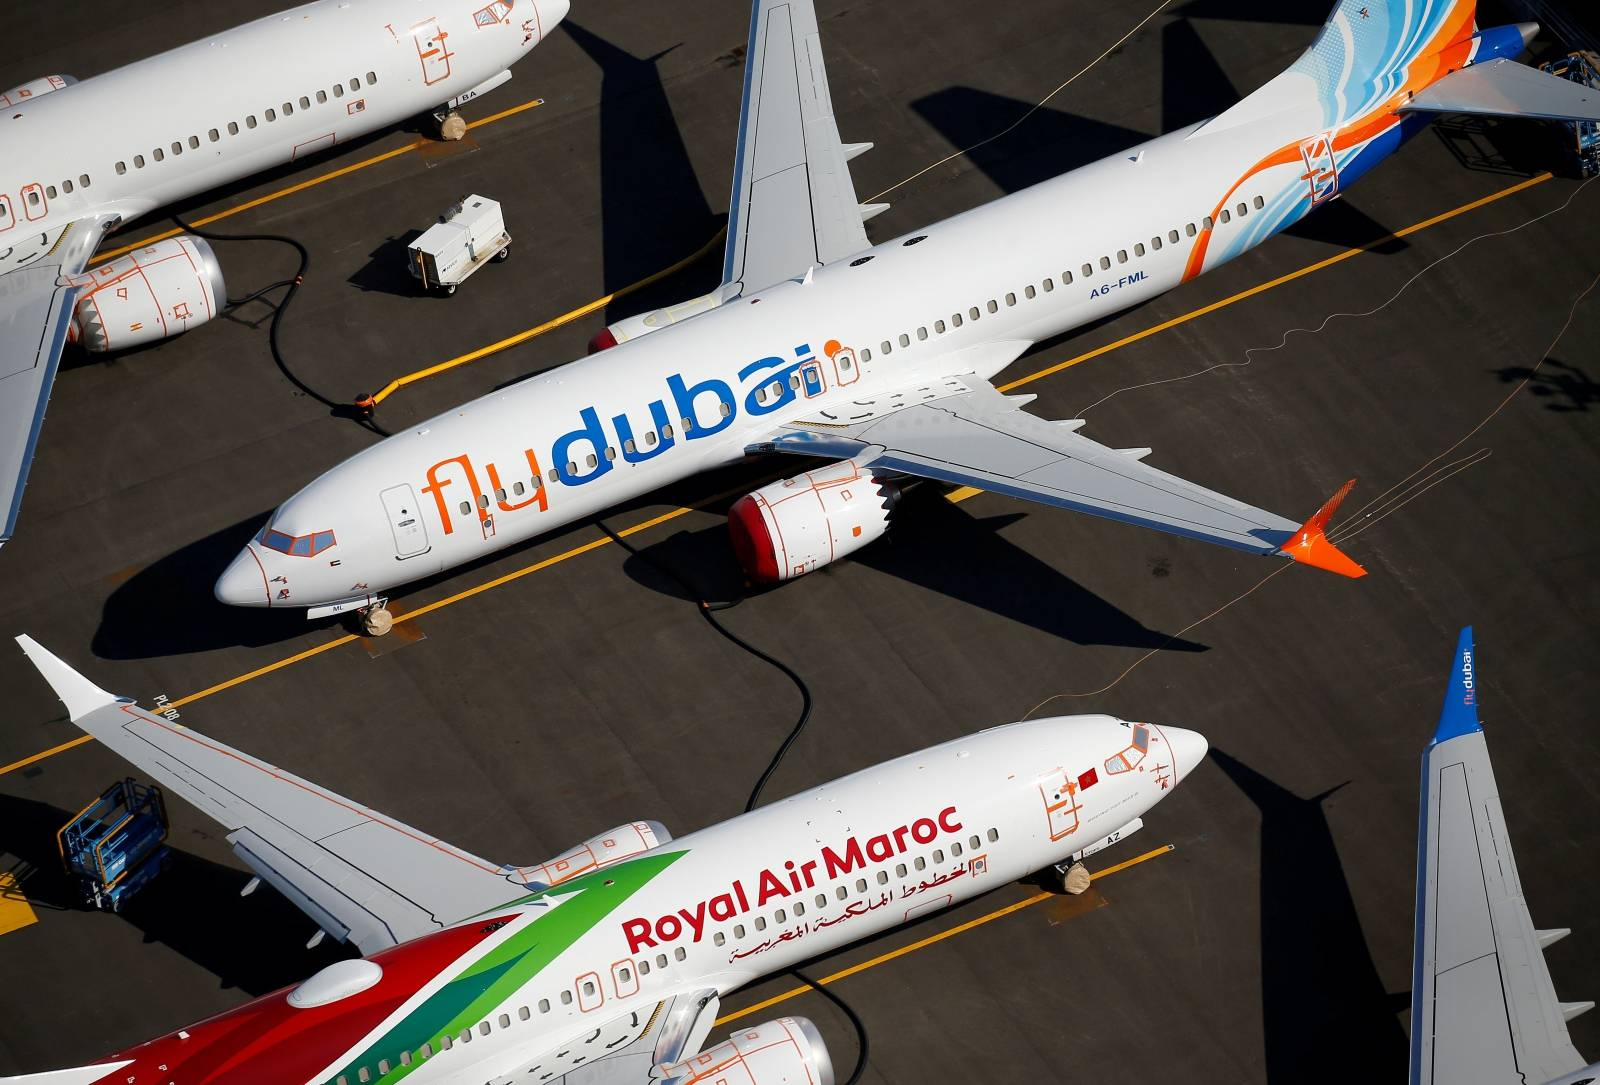 FILE PHOTO: Grounded flydubai and Royal Air Maroc Boeing 737 MAX aircraft are seen parked at Boeing Field in Seattle